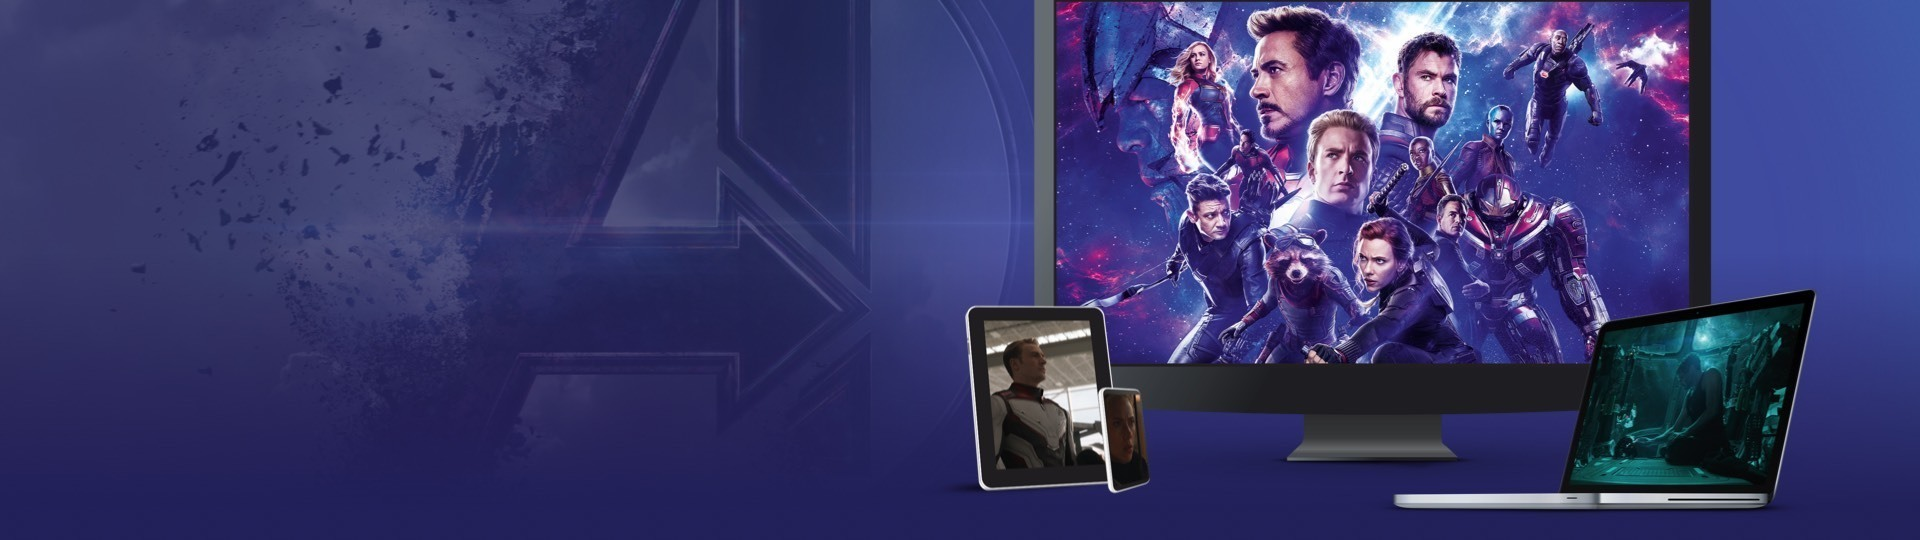 Avengers: Endgame in Download digitale